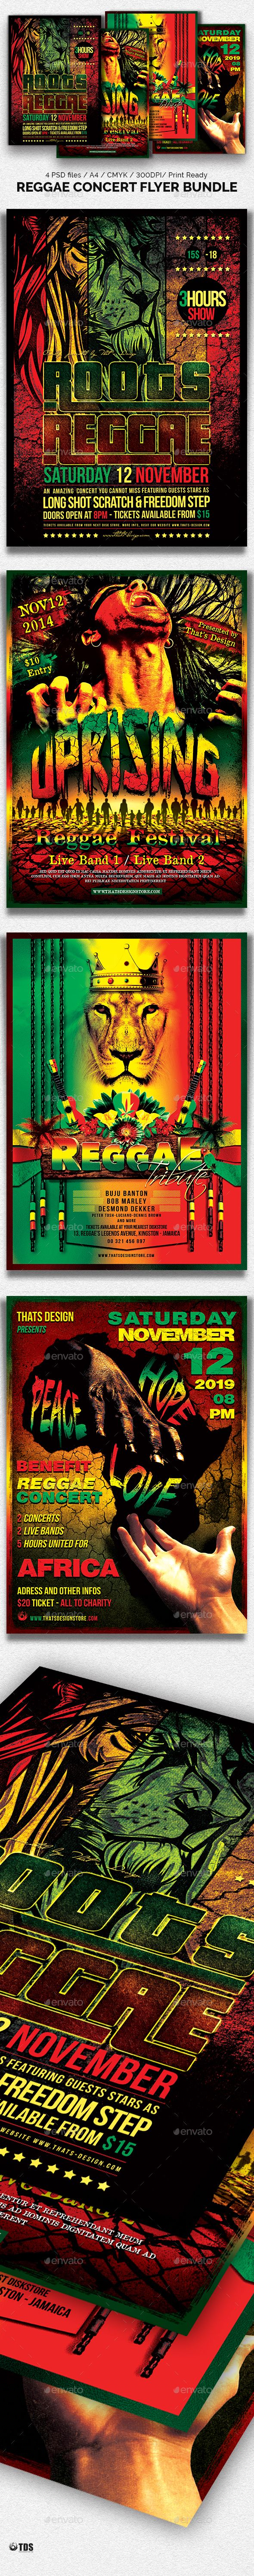 Reggae Concert Flyer Bundle